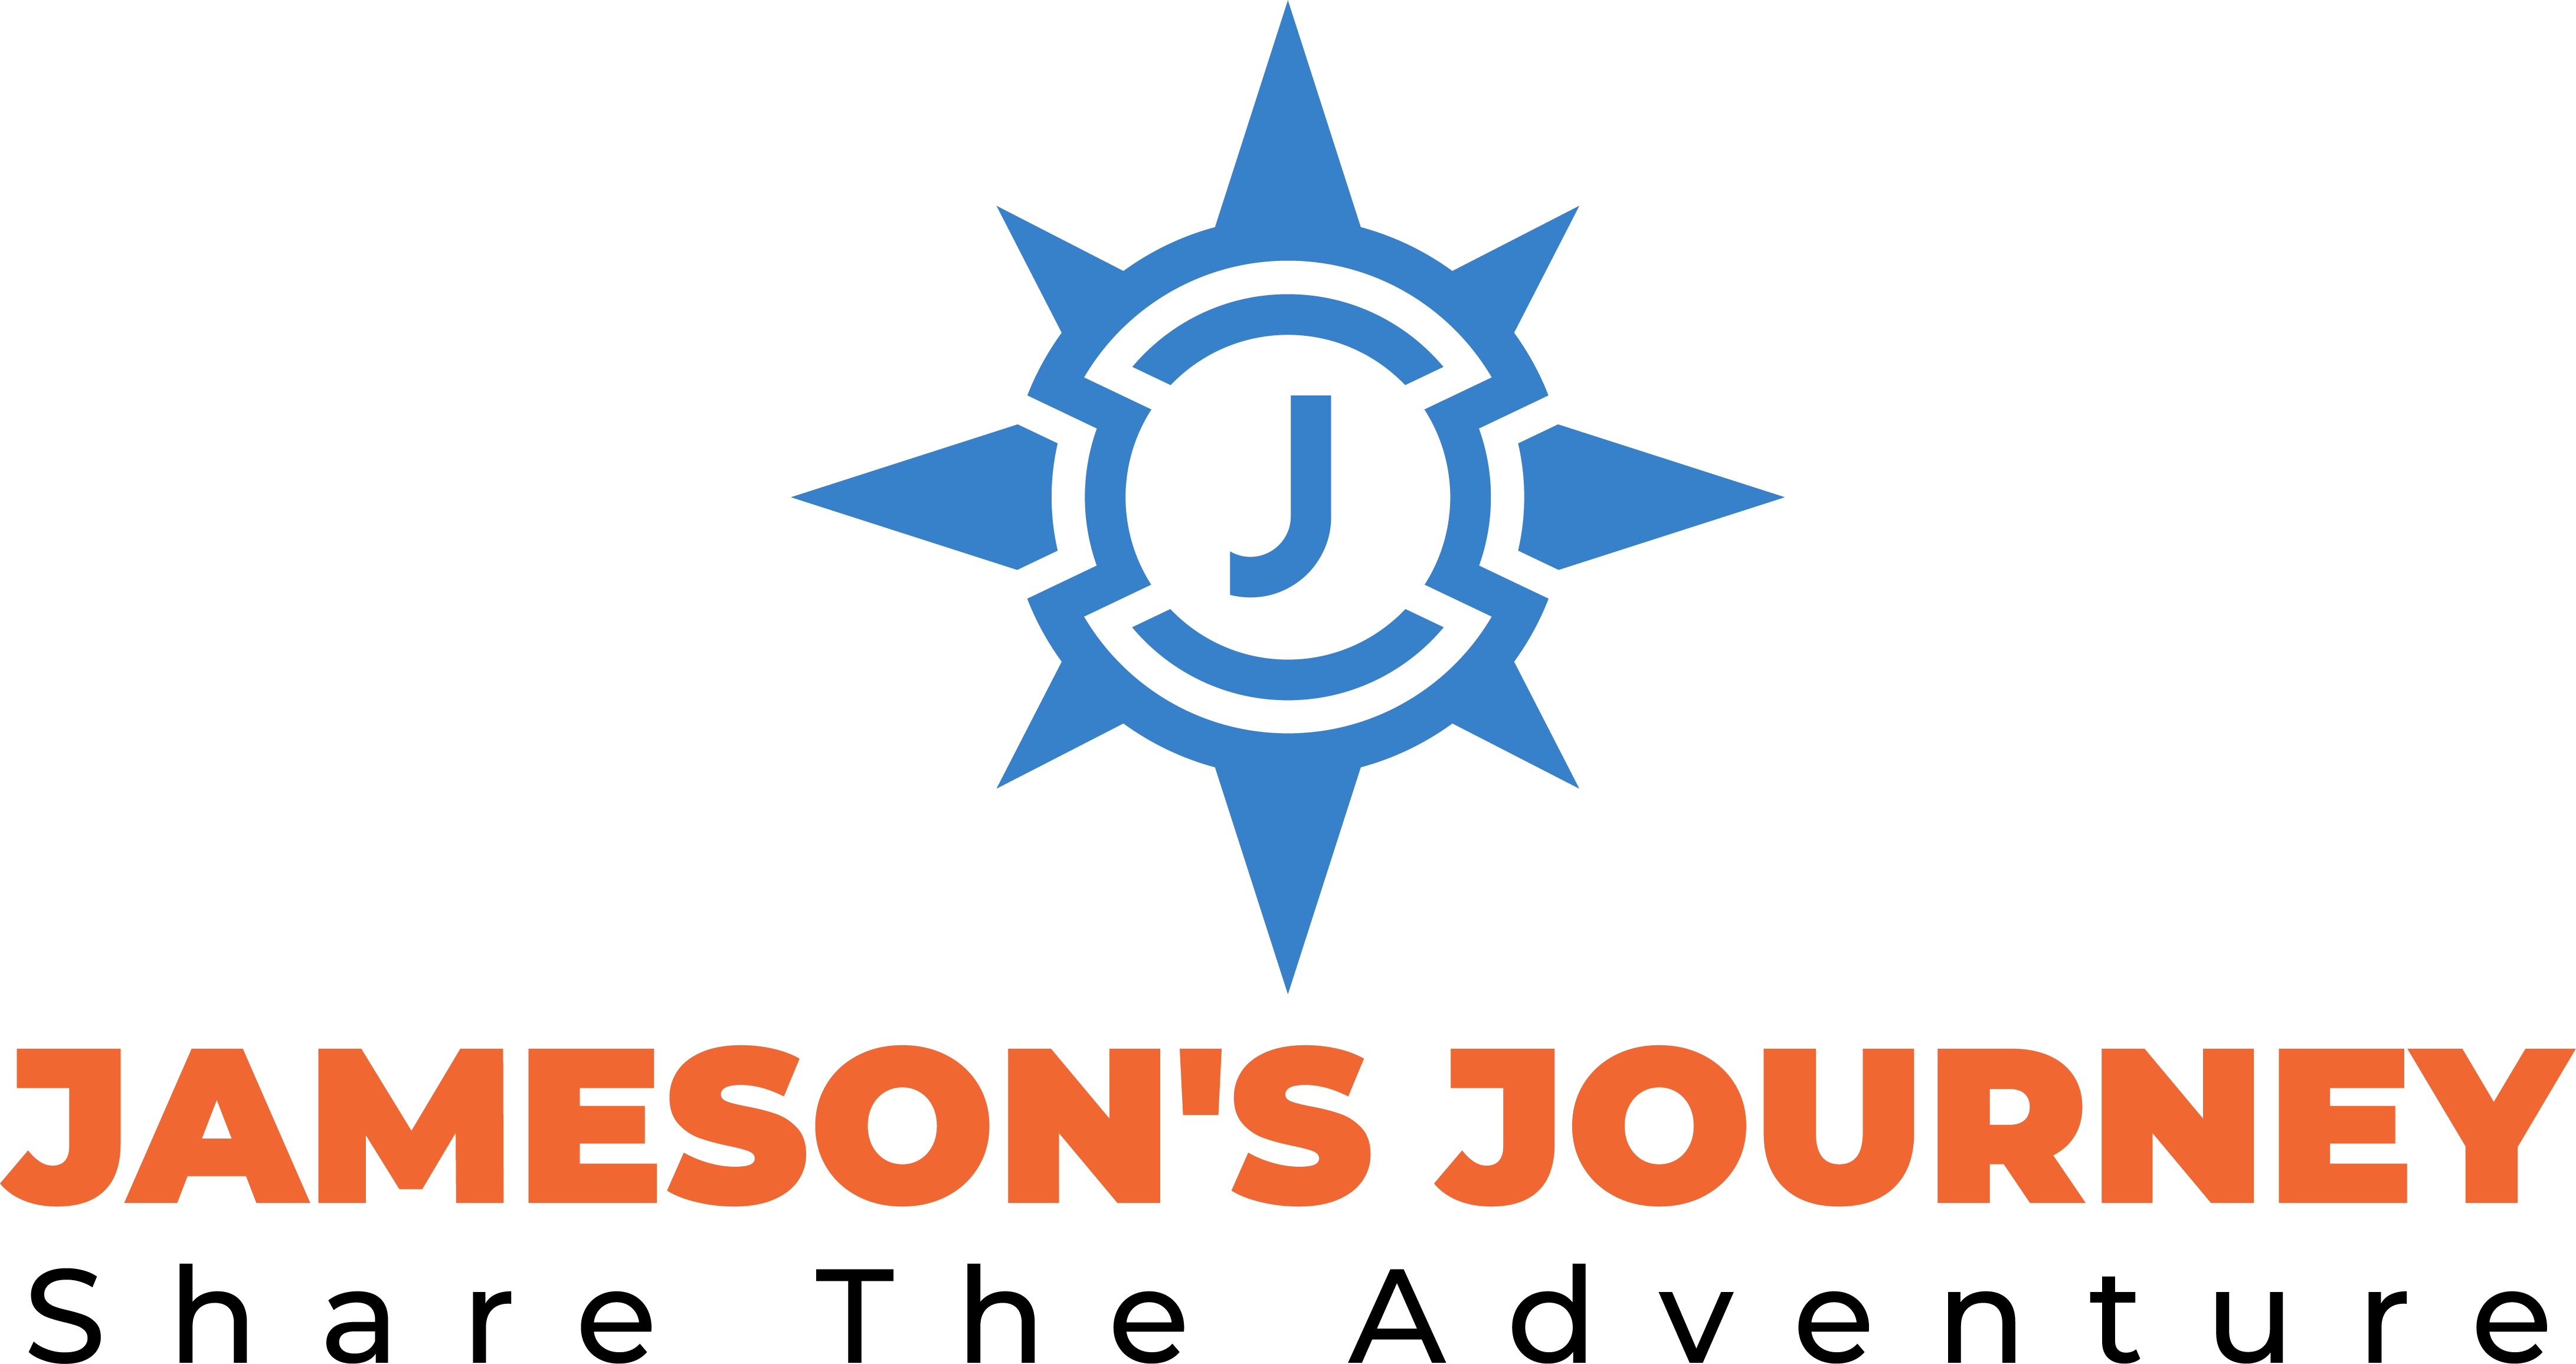 jameson's Journey